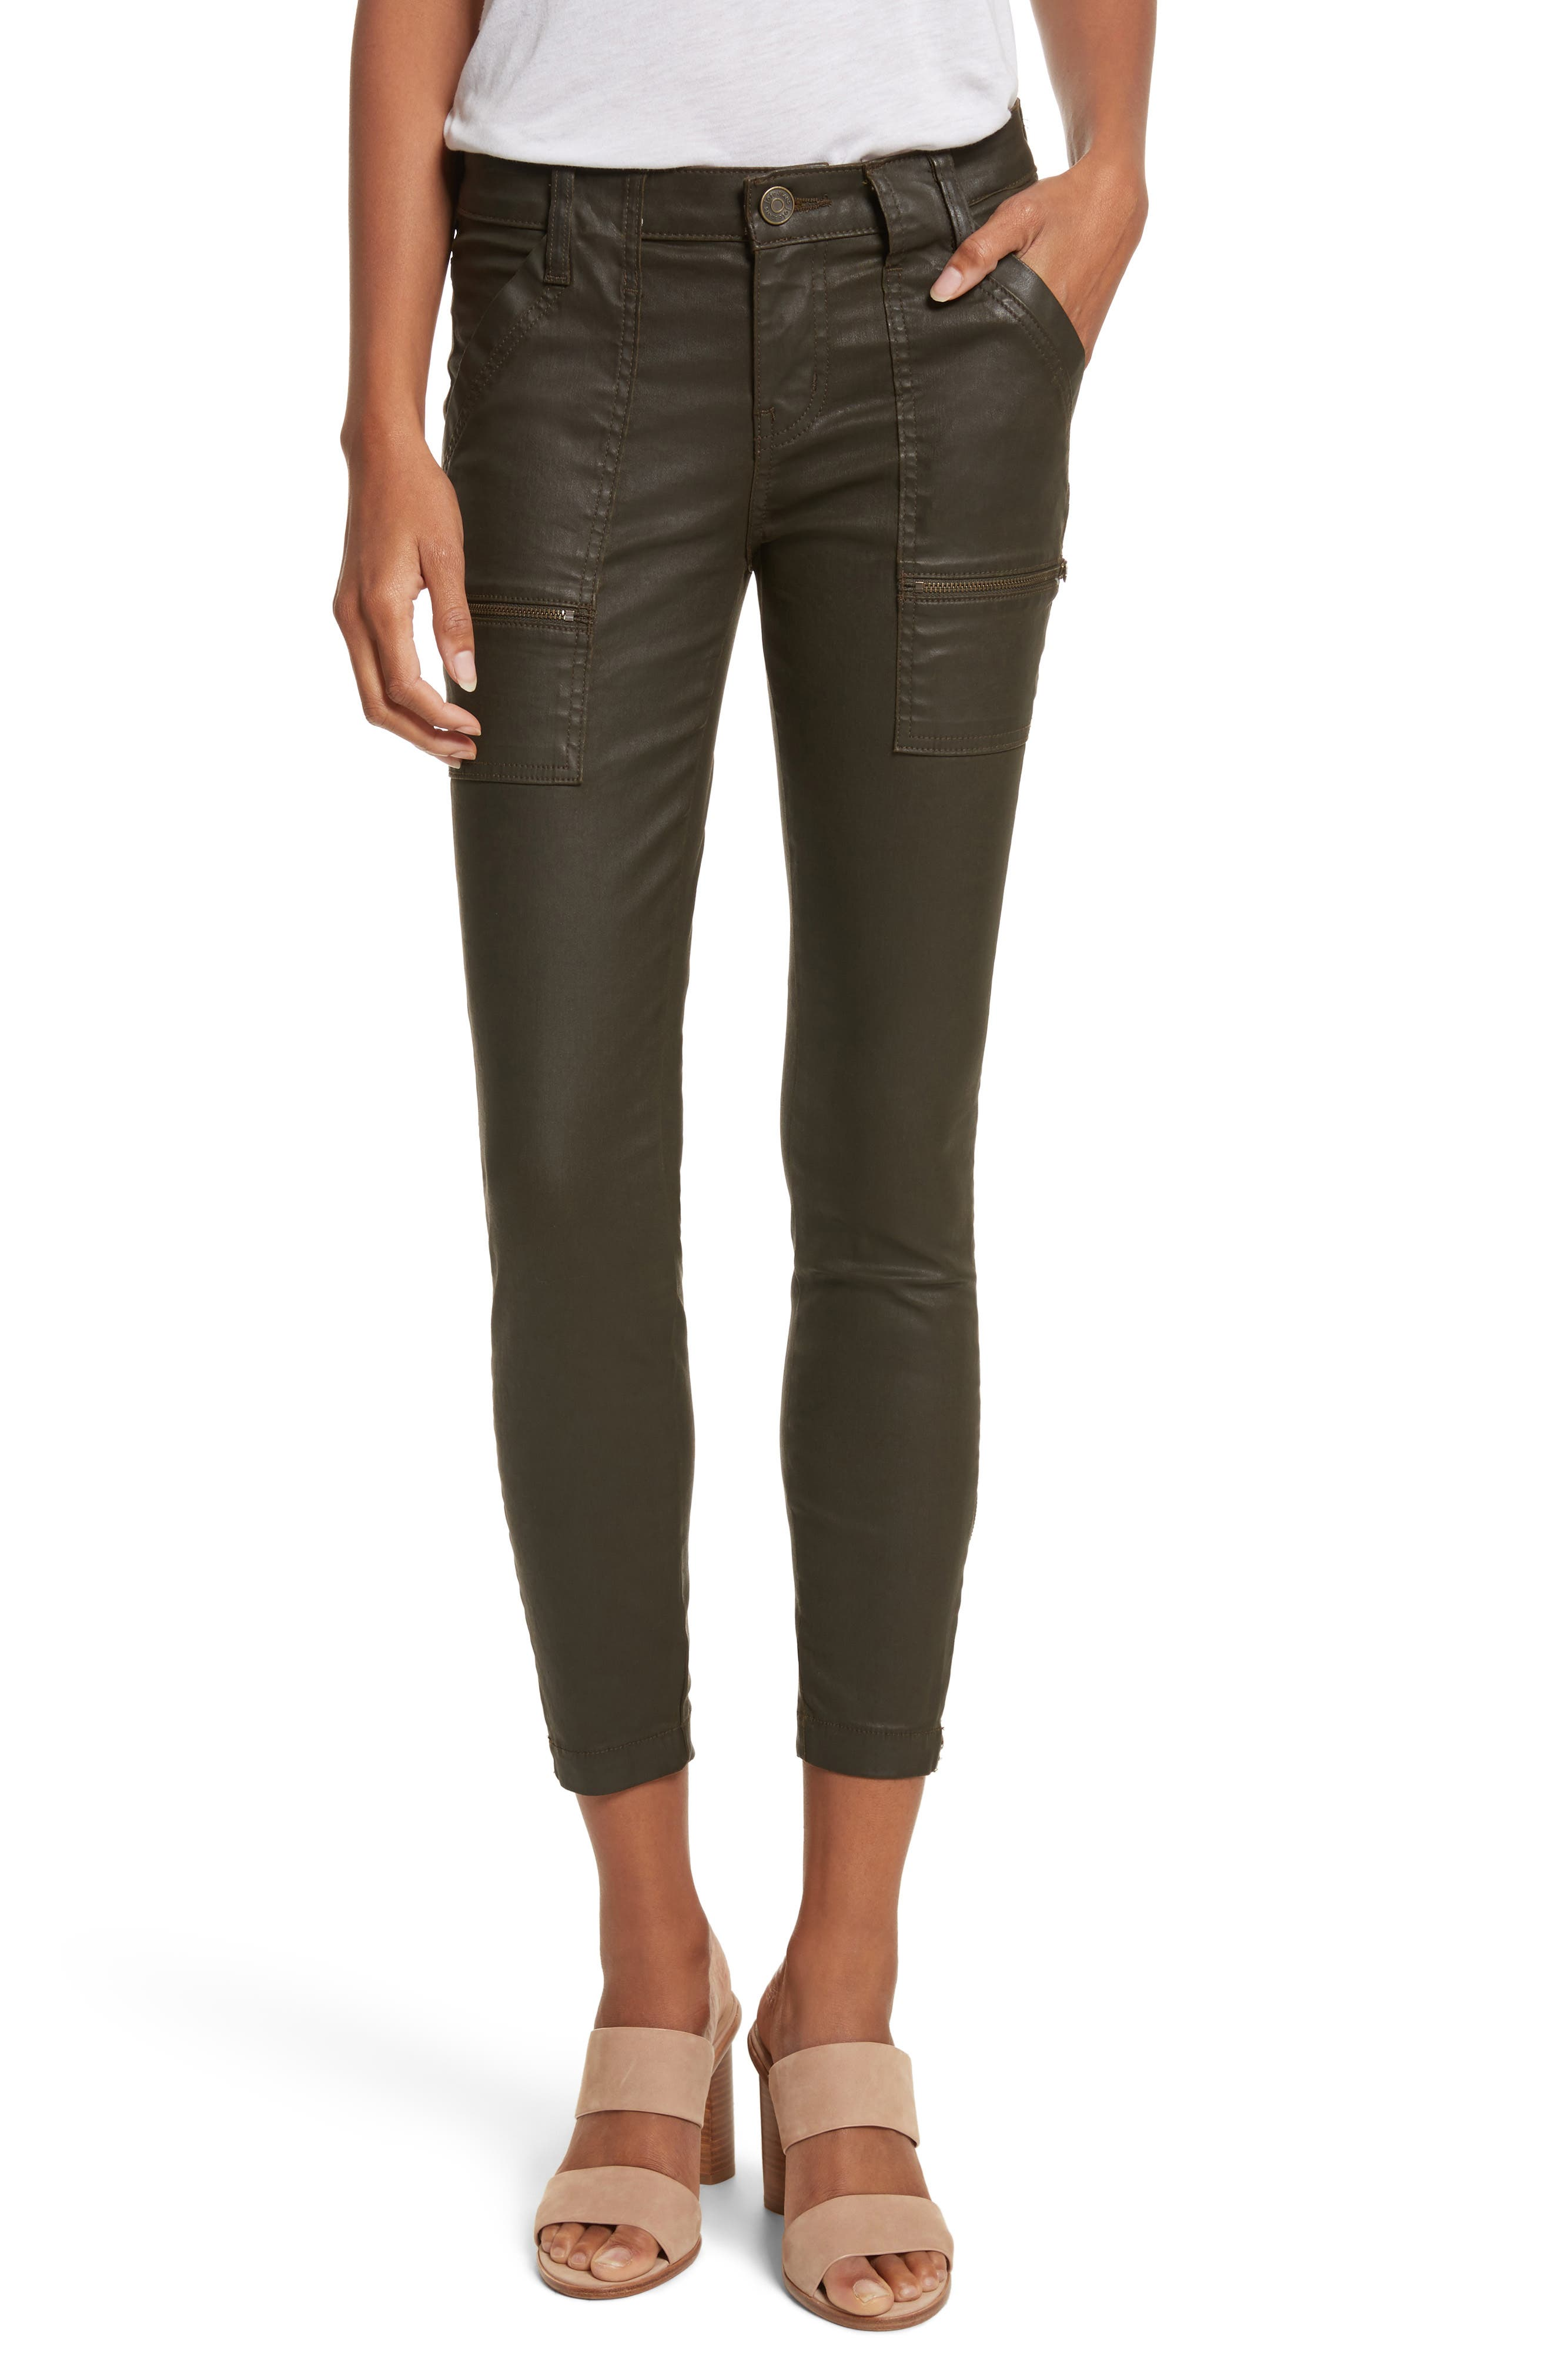 Joie Park B Coated Skinny Jeans